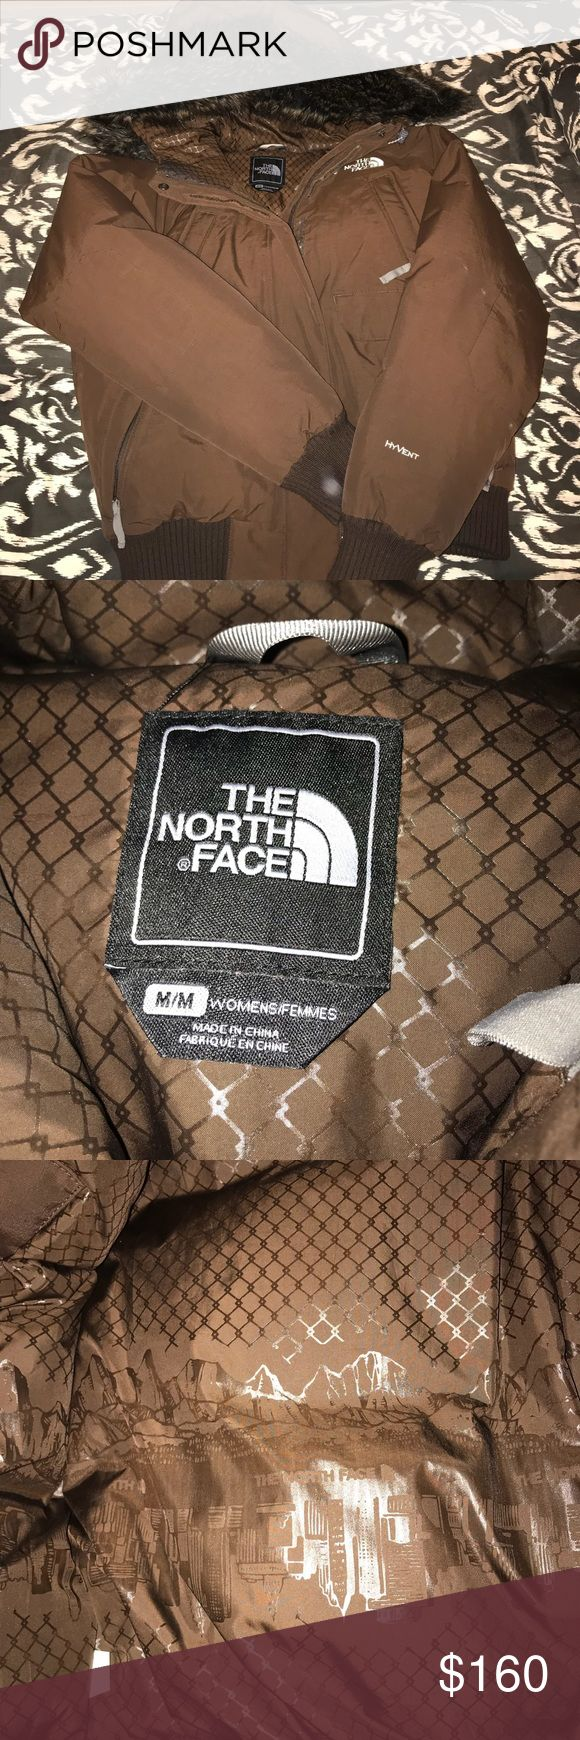 North Face Jacket The North Face puffer jacket in a dark brown .. extremely warm and in great condition (just fits me too small) .. small black mark on back/shoulder on one side (as shown in last picture) .. open to offers, no trades The North Face Jackets & Coats Puffers